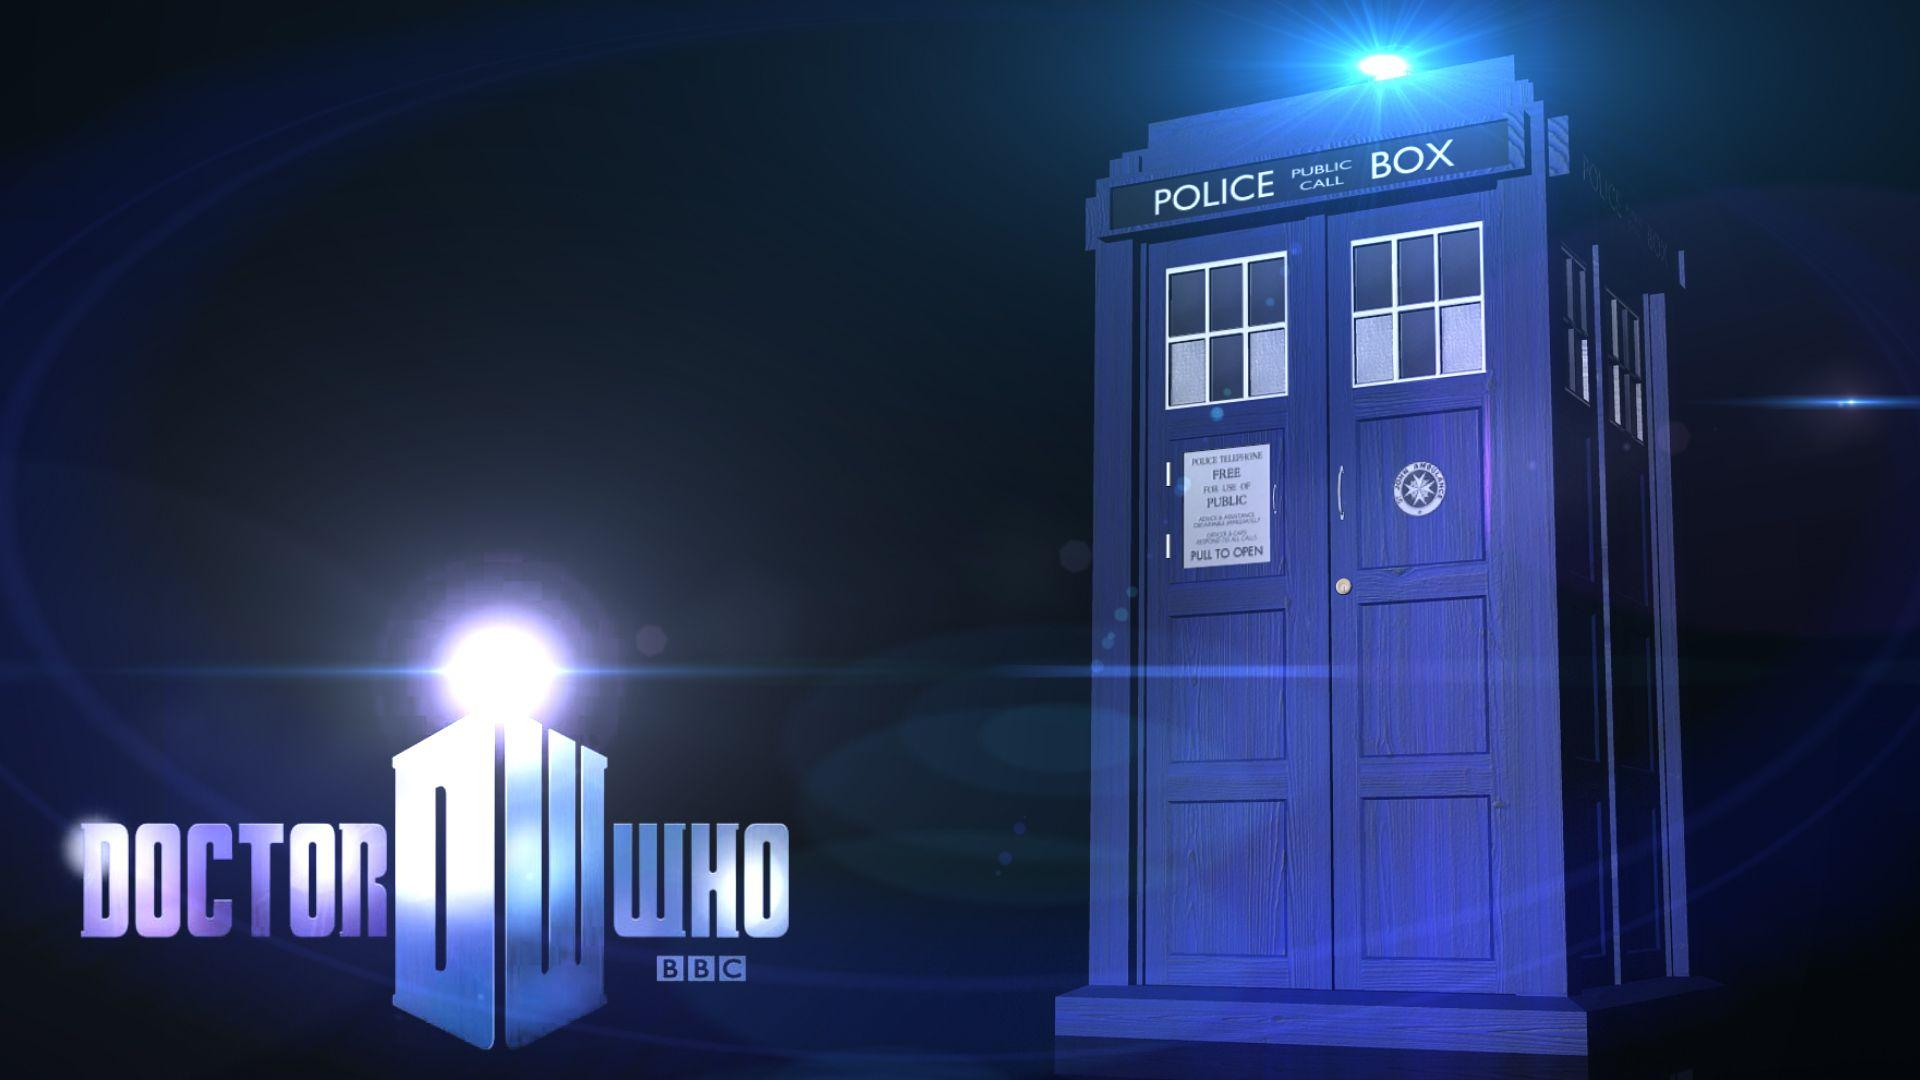 tardis images hd wallpaper - photo #25